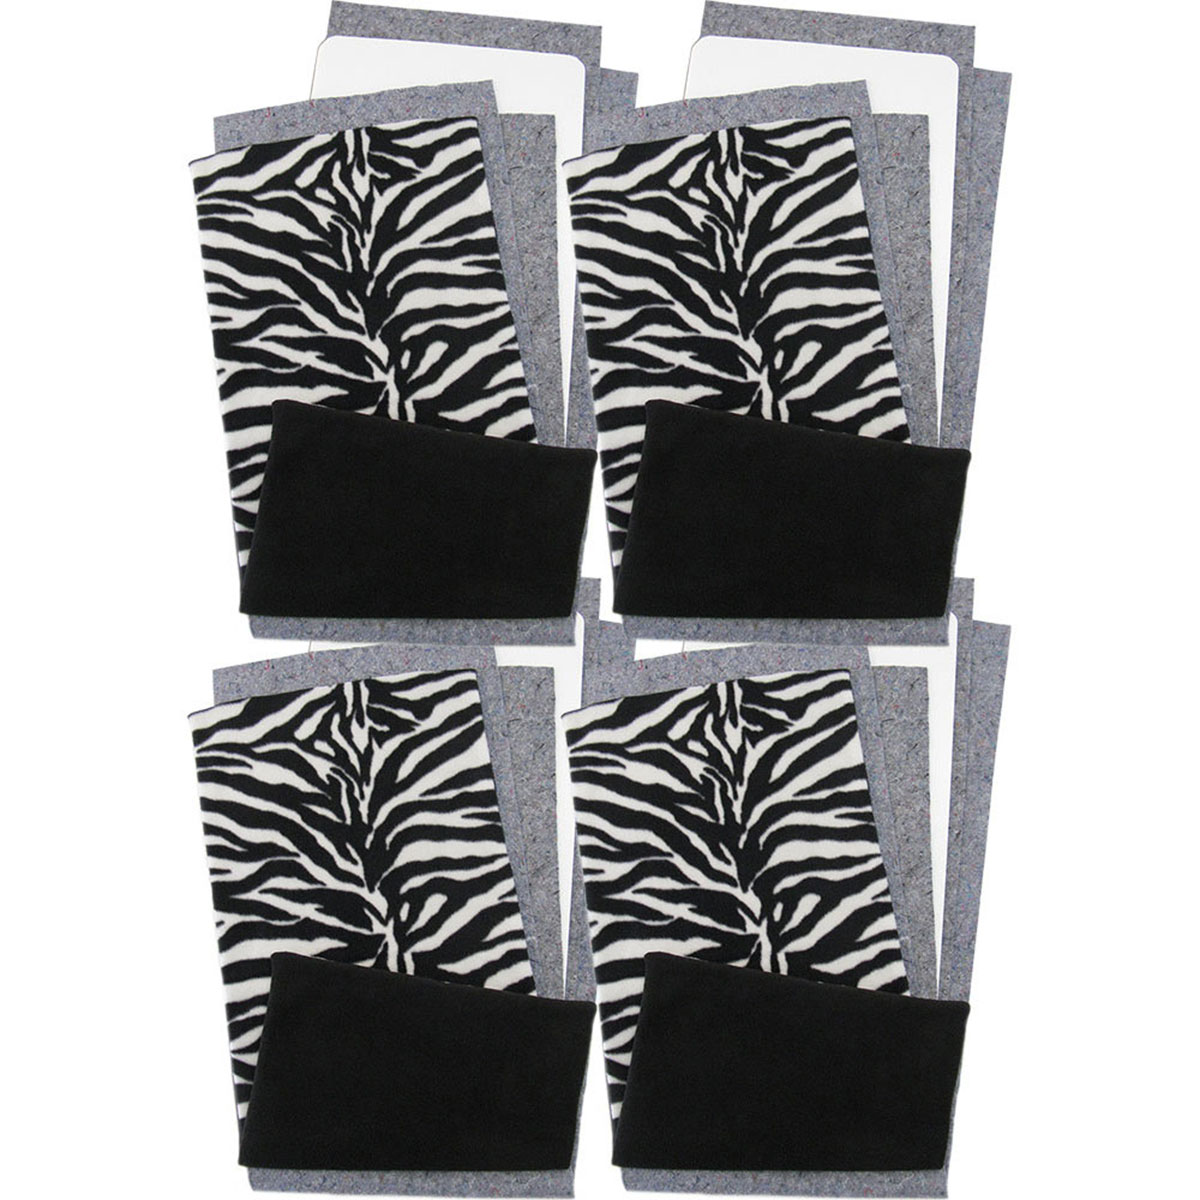 Zebra Fleece Flippers for Guinea Pigs in Zebra